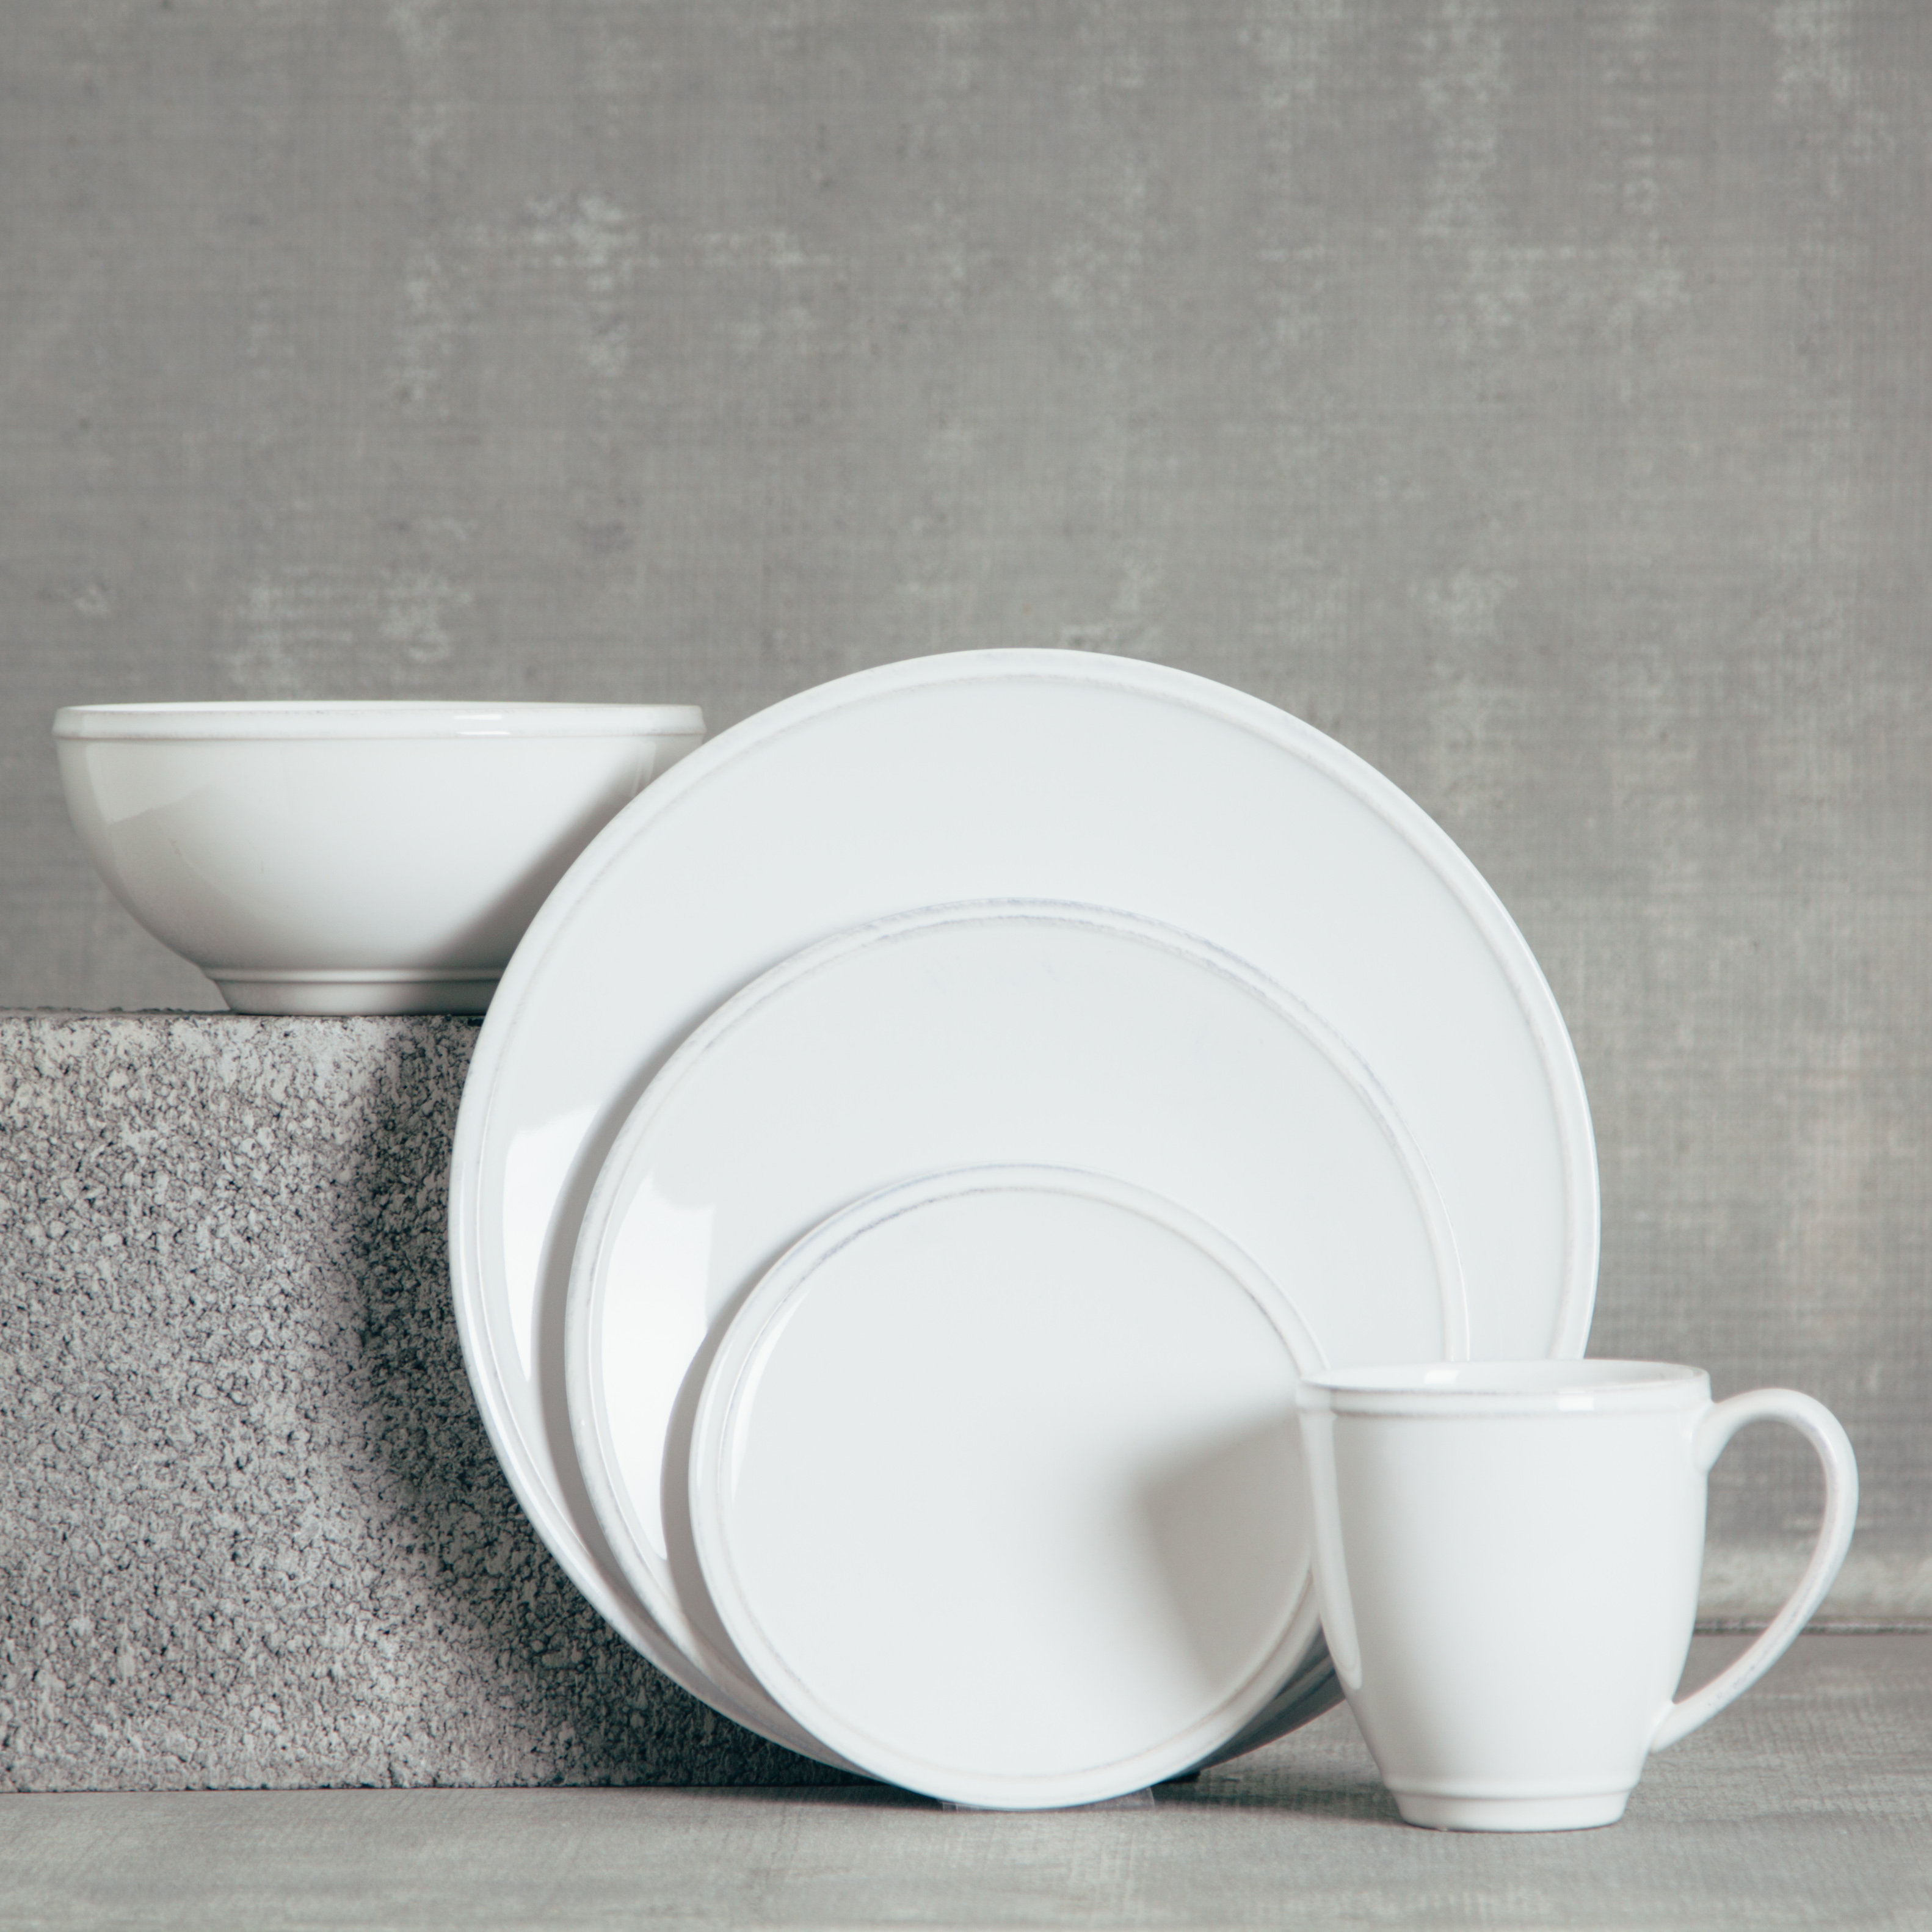 Relish Decor Costa Nova Friso Dinnerware White Dish Sets & Friso White Dinnerware Sets - Relish Decor